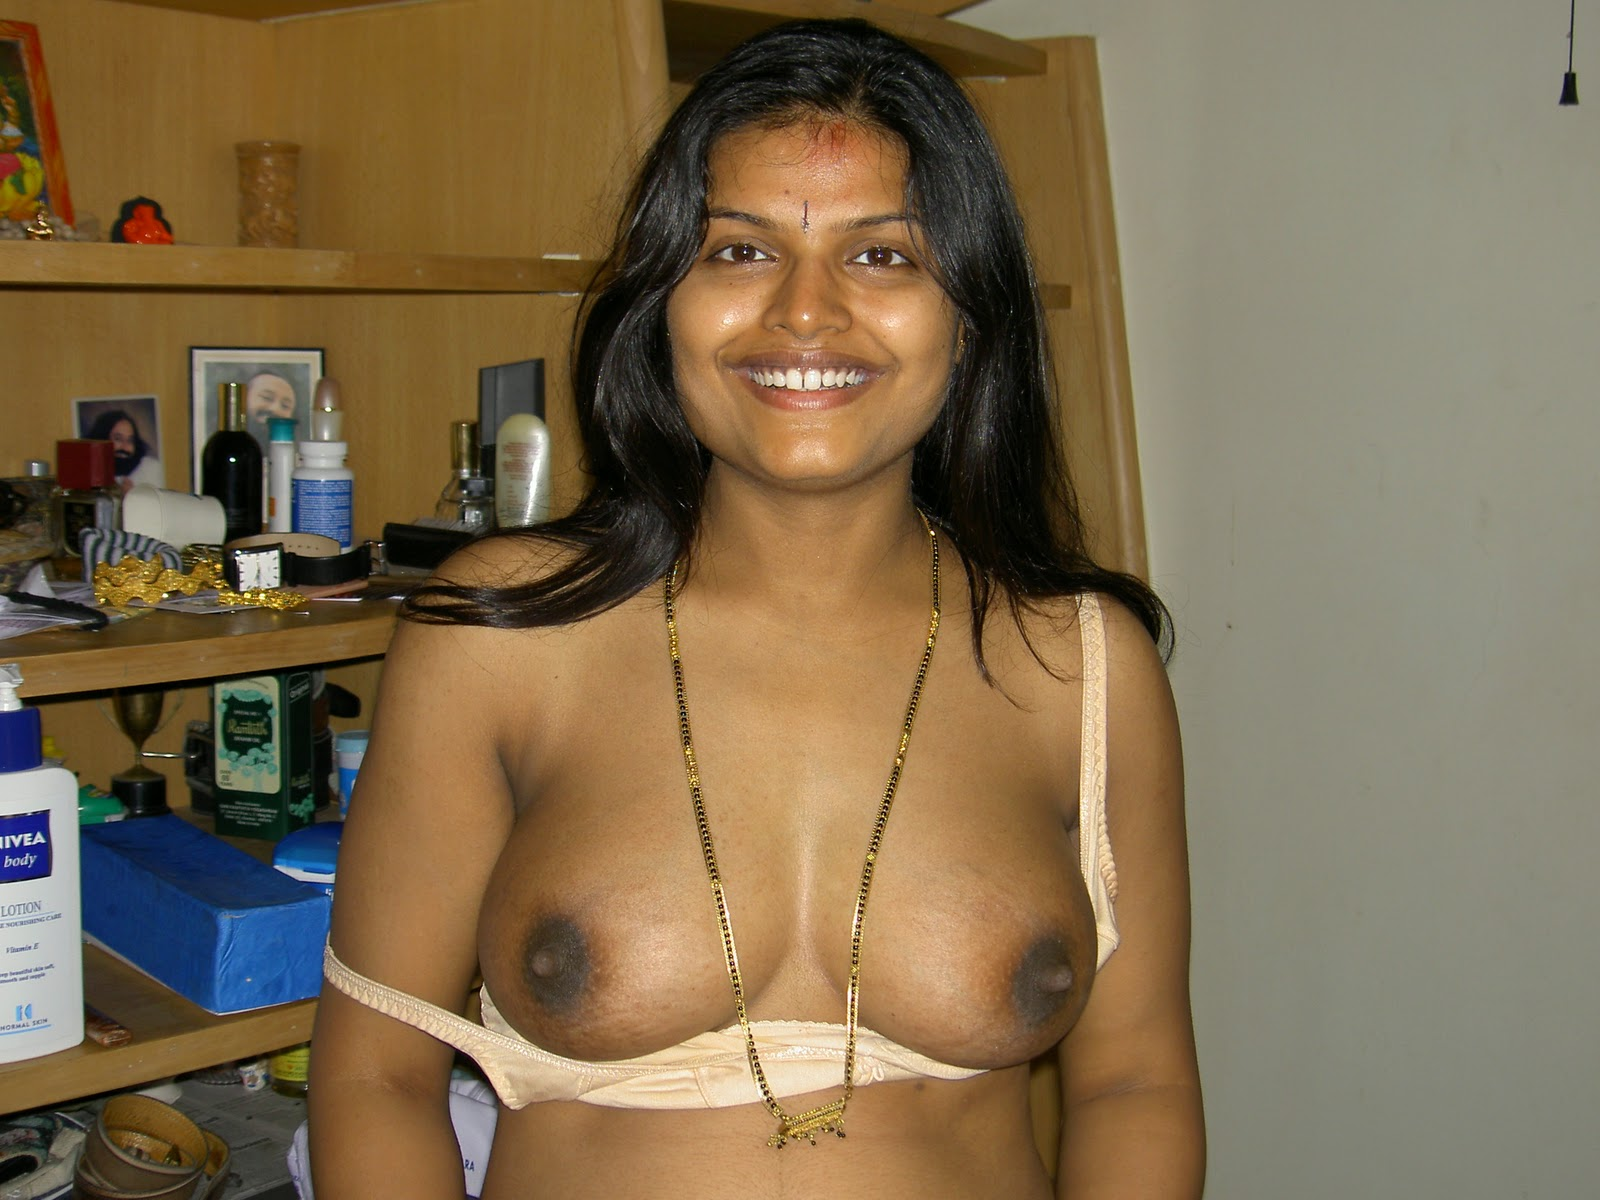 Indian Pussies: Sexy arpita aunty - 4